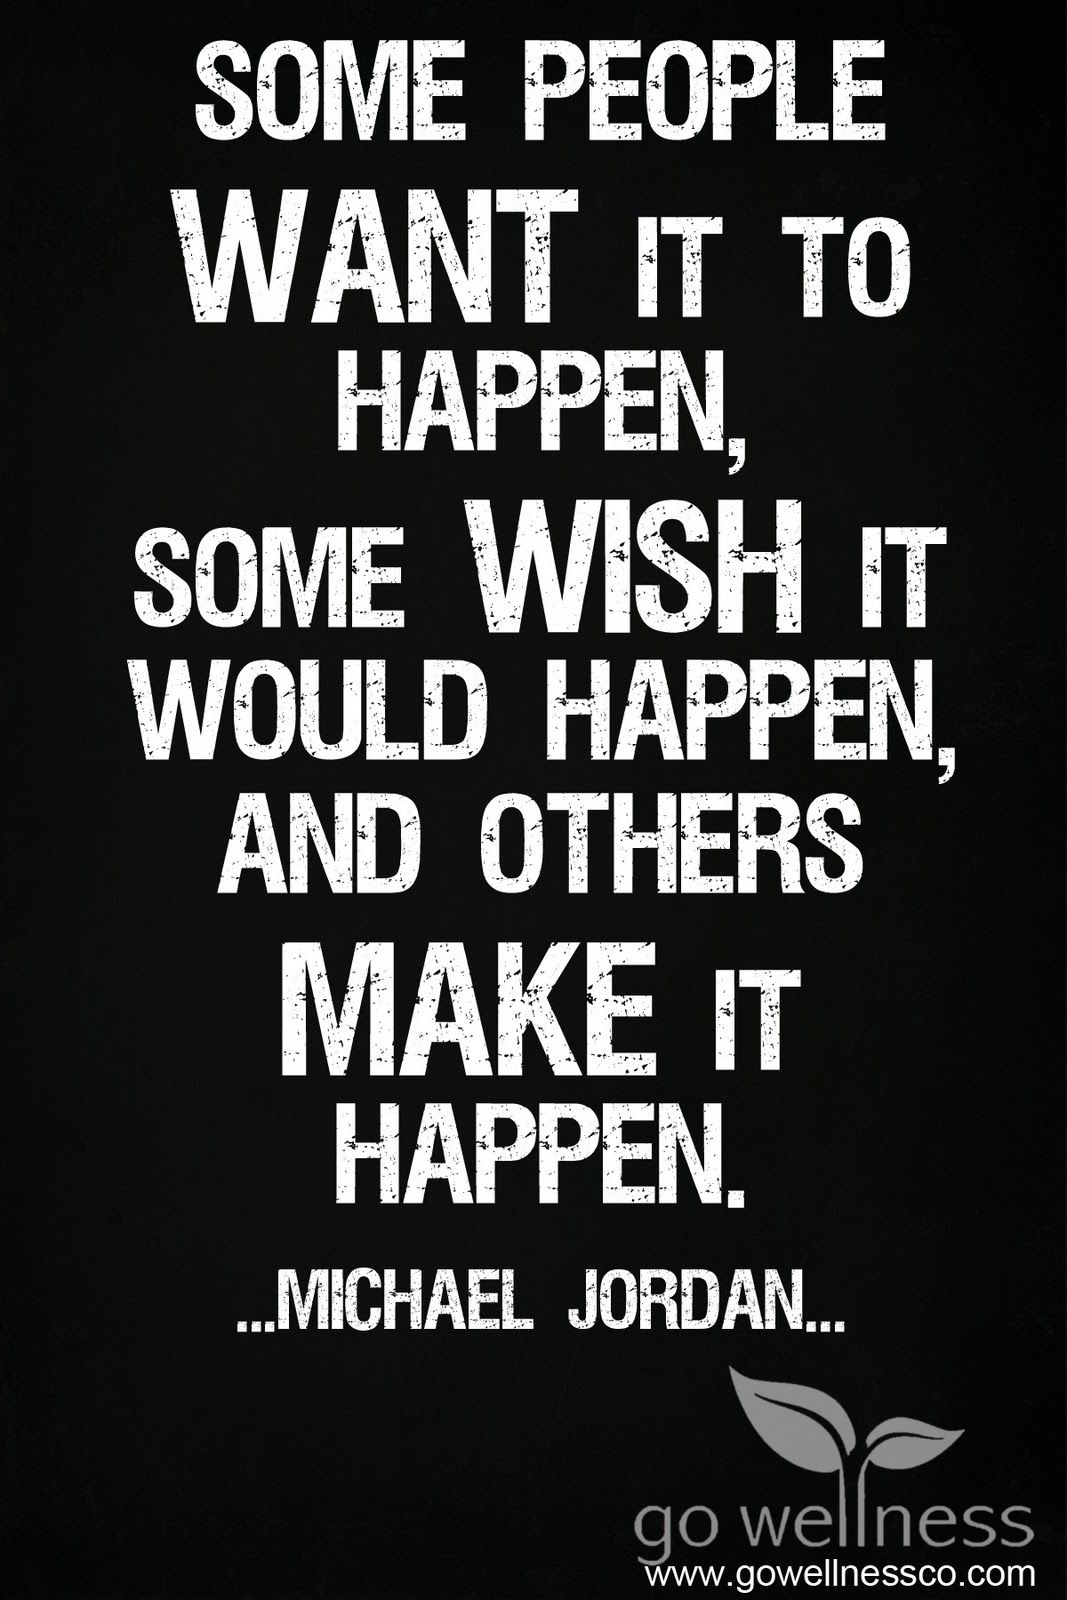 Thank you Mr. Jordan. One of my all time favorite quotes